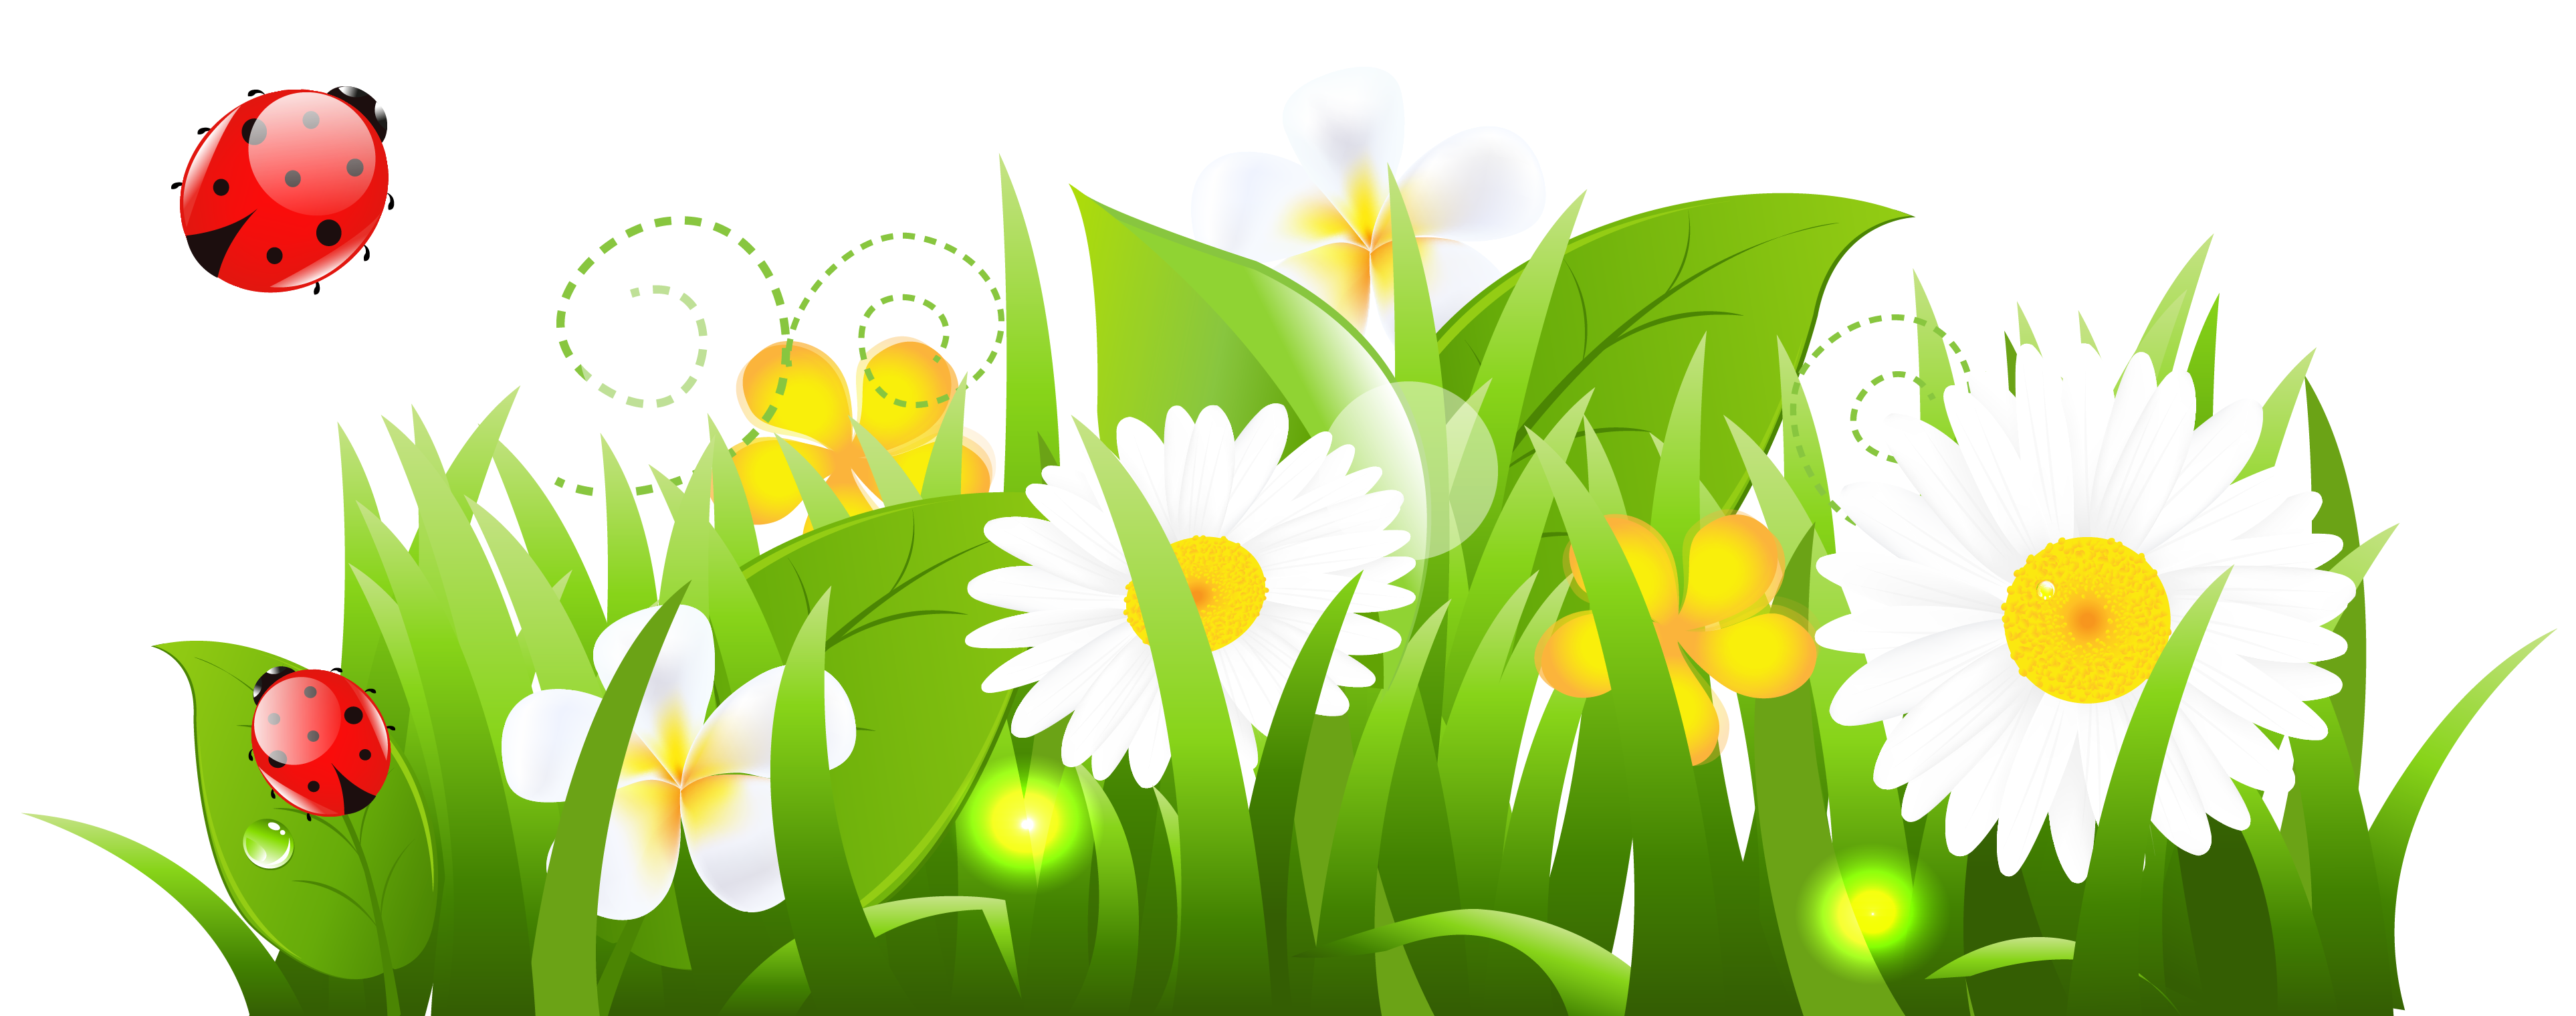 Grass and flowers clipart hdc - Grass Clipart